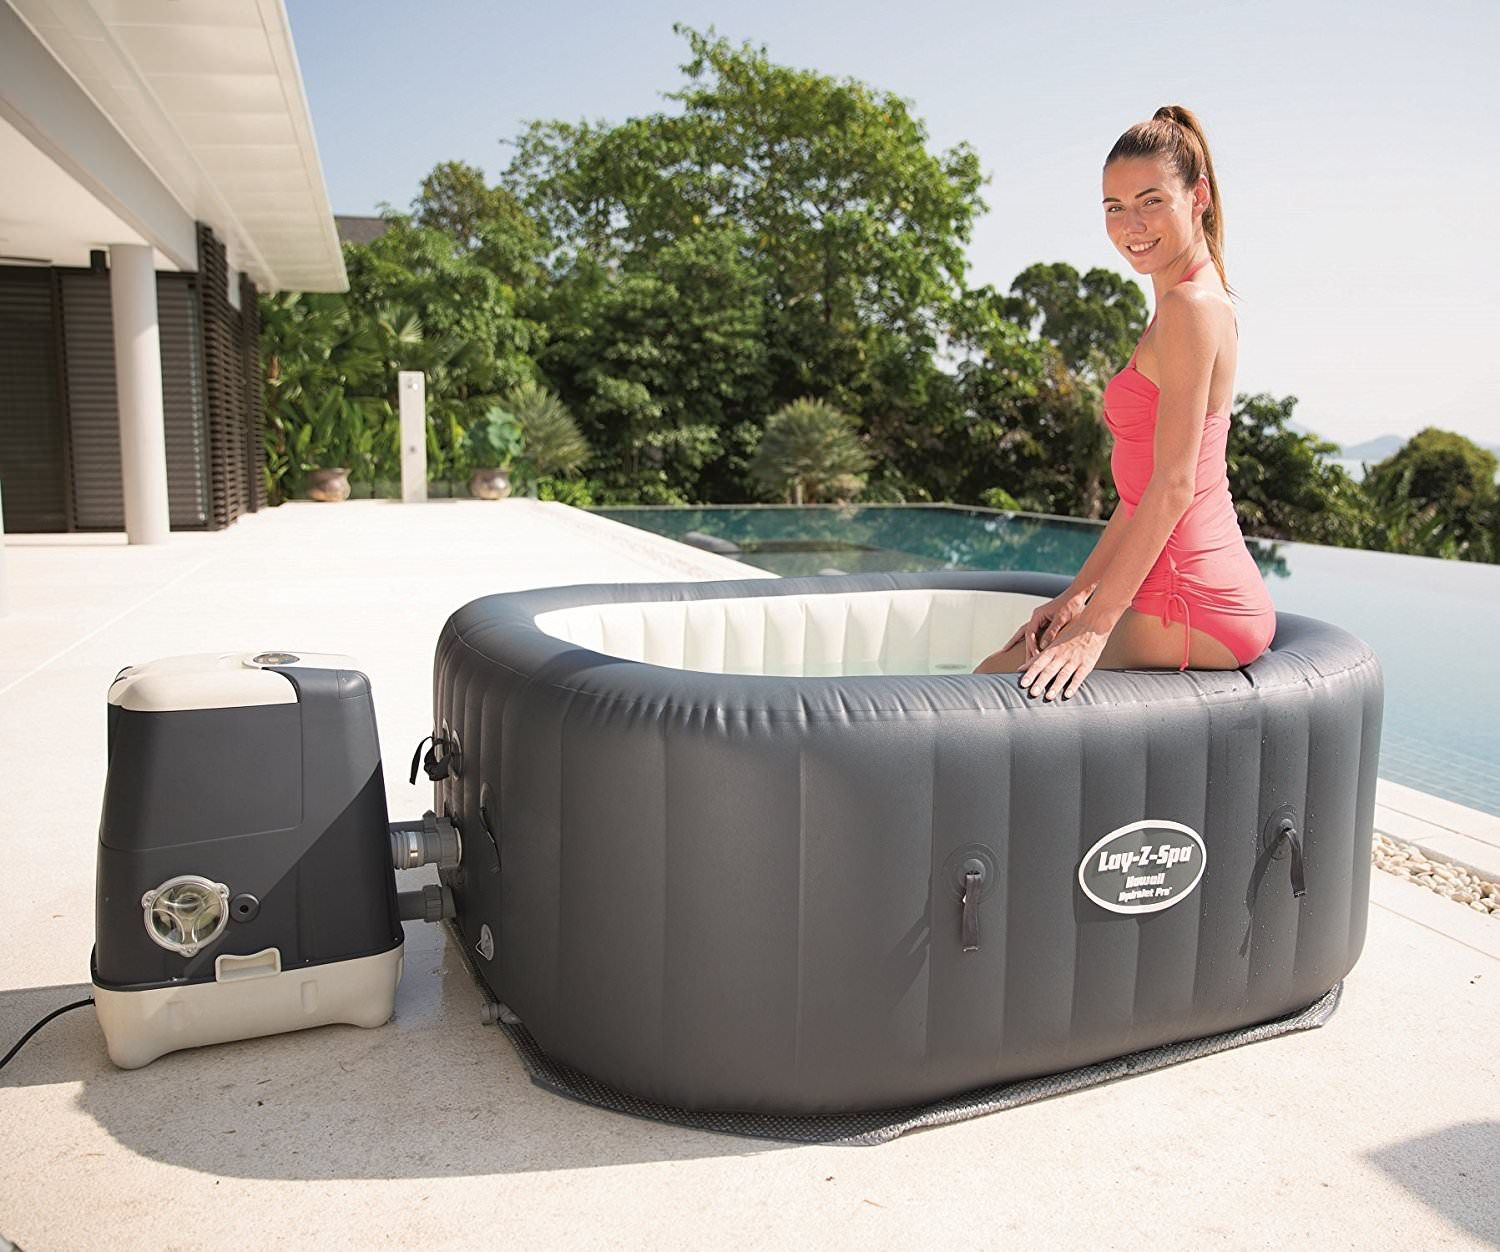 Best Portable Hot Tubs 2020 1001 Gardens Portable Hot Tub Inflatable Hot Tubs Hot Tub Reviews